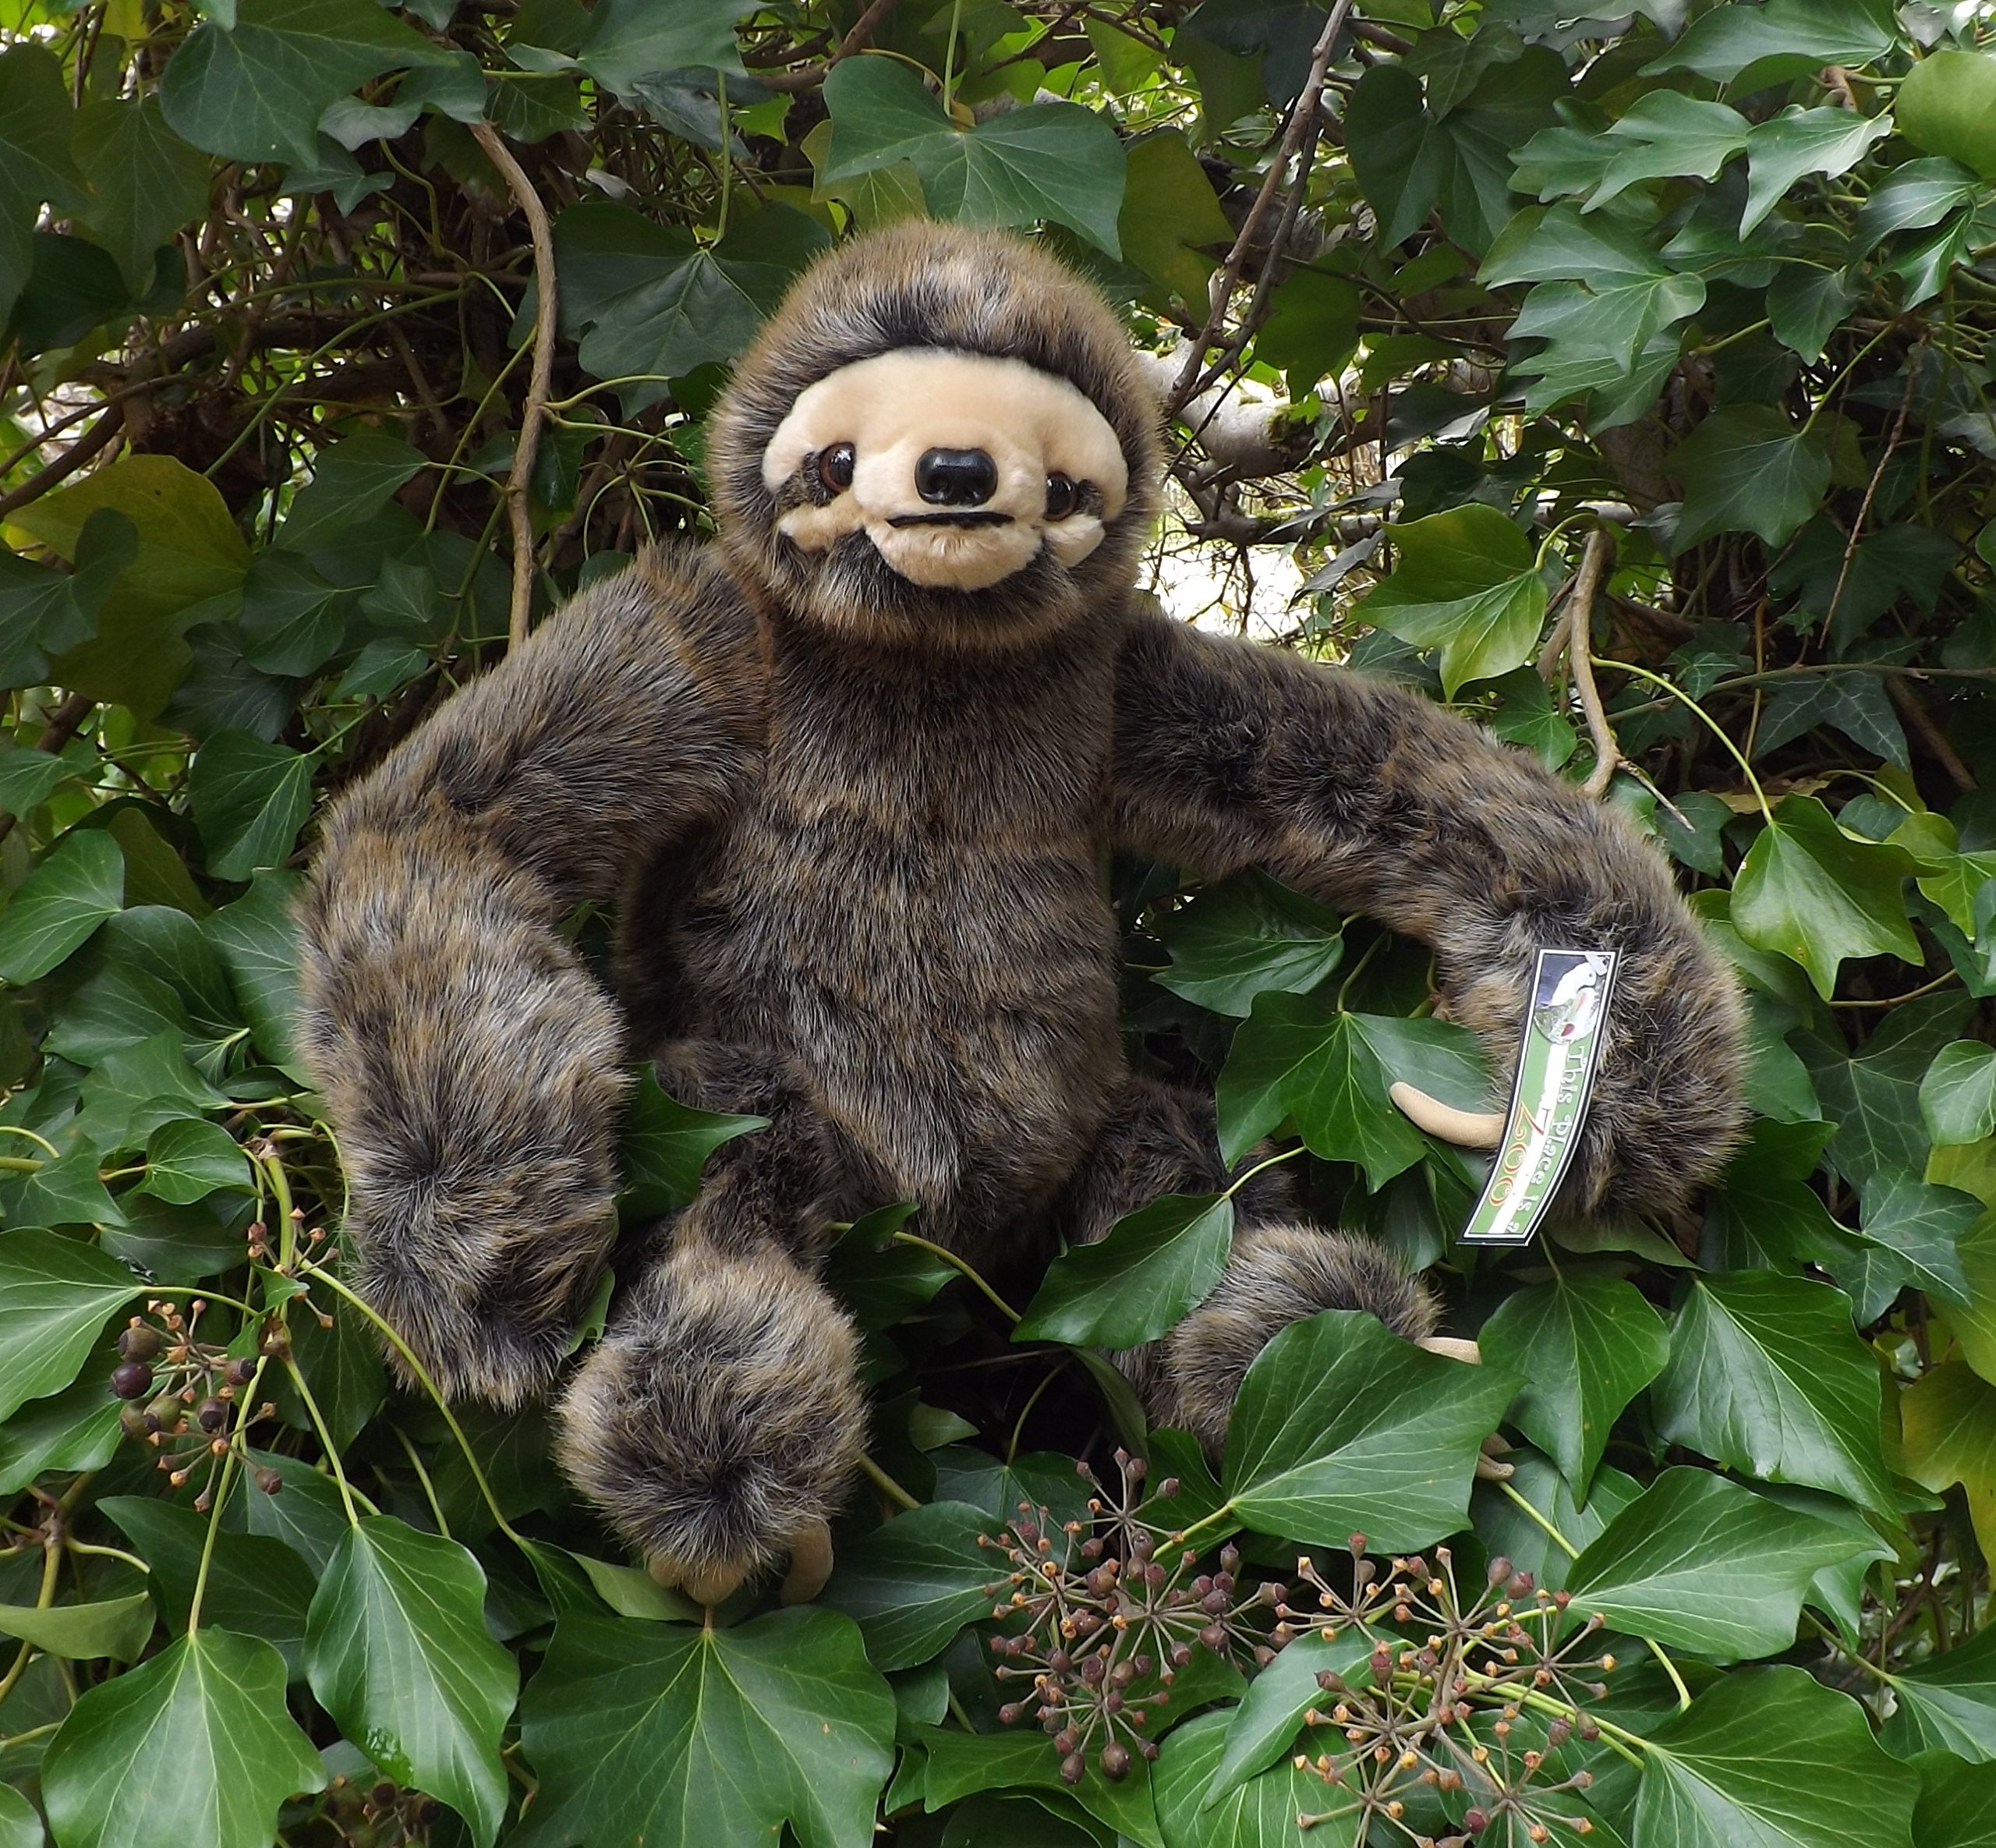 Large Stuffed Sloth - 24'' Realistic Stuffed Animal Sloth by This Place is a Zoo